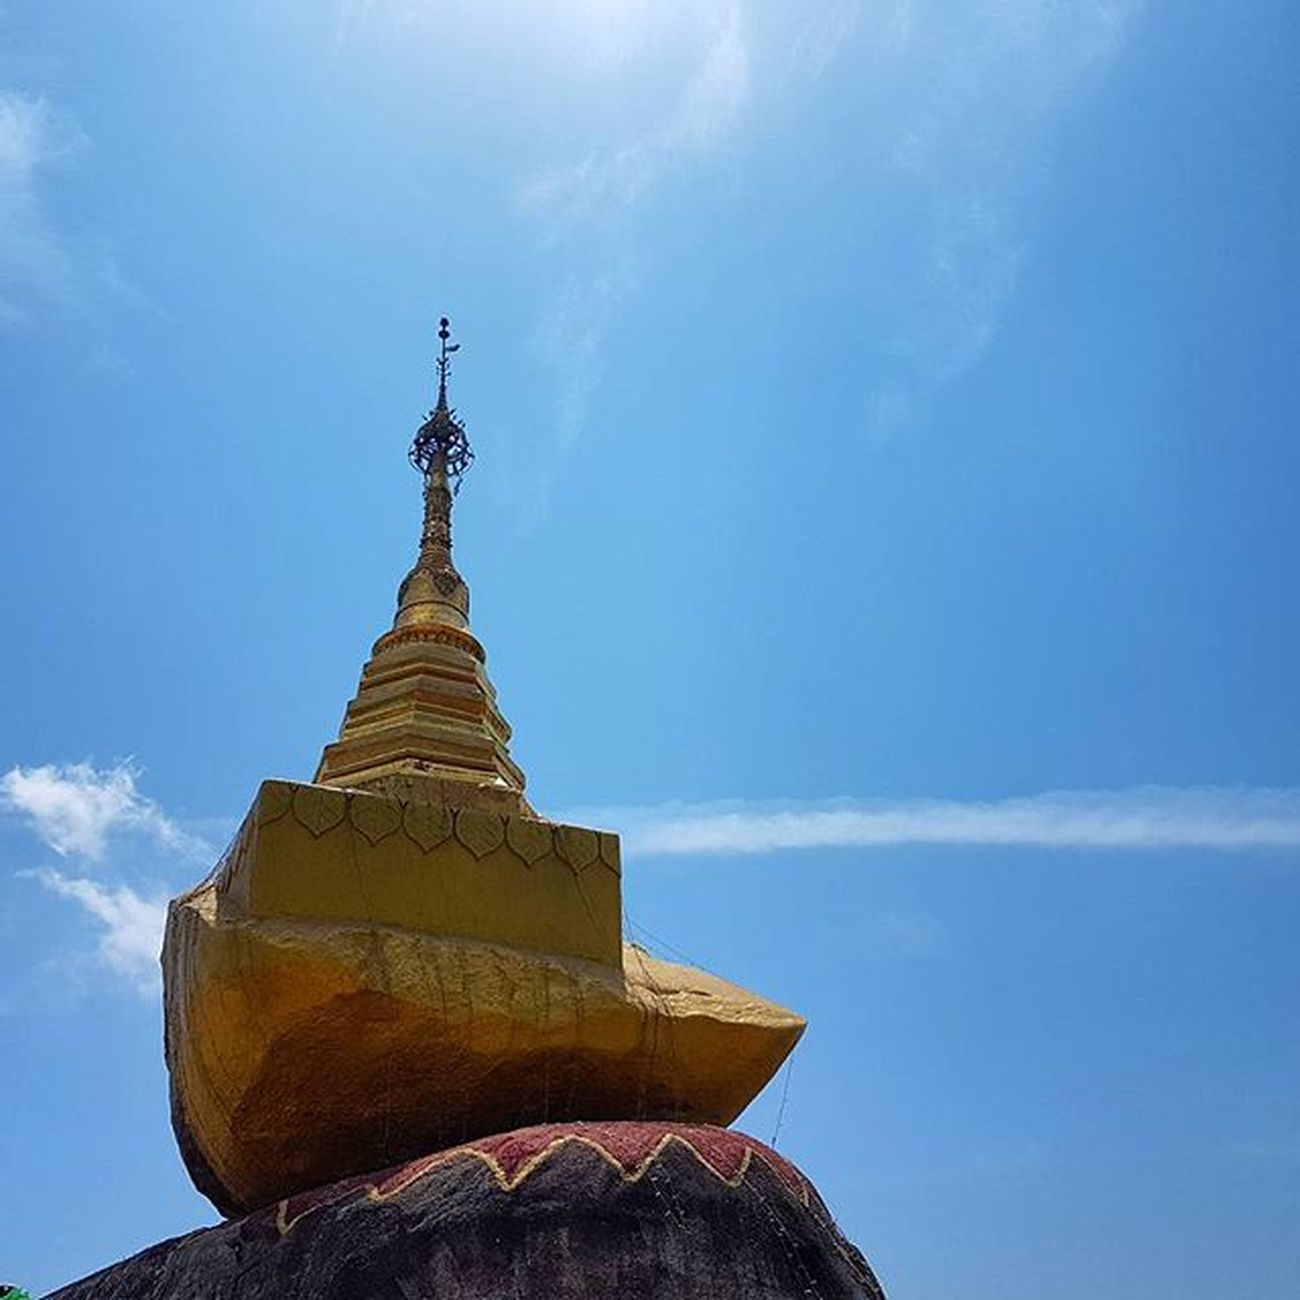 Kyaiktiyo Kyaiktiyopagoda Pagoda Goldenrock Goldenpagoda Igersmyanmar Myanmar Burma Instagood Instagram Instagrammers Hot Mountain Mobilephotography Samsungs7edge Photo Mobilephoto Samsungphoto Travelgood Vacationinstyle